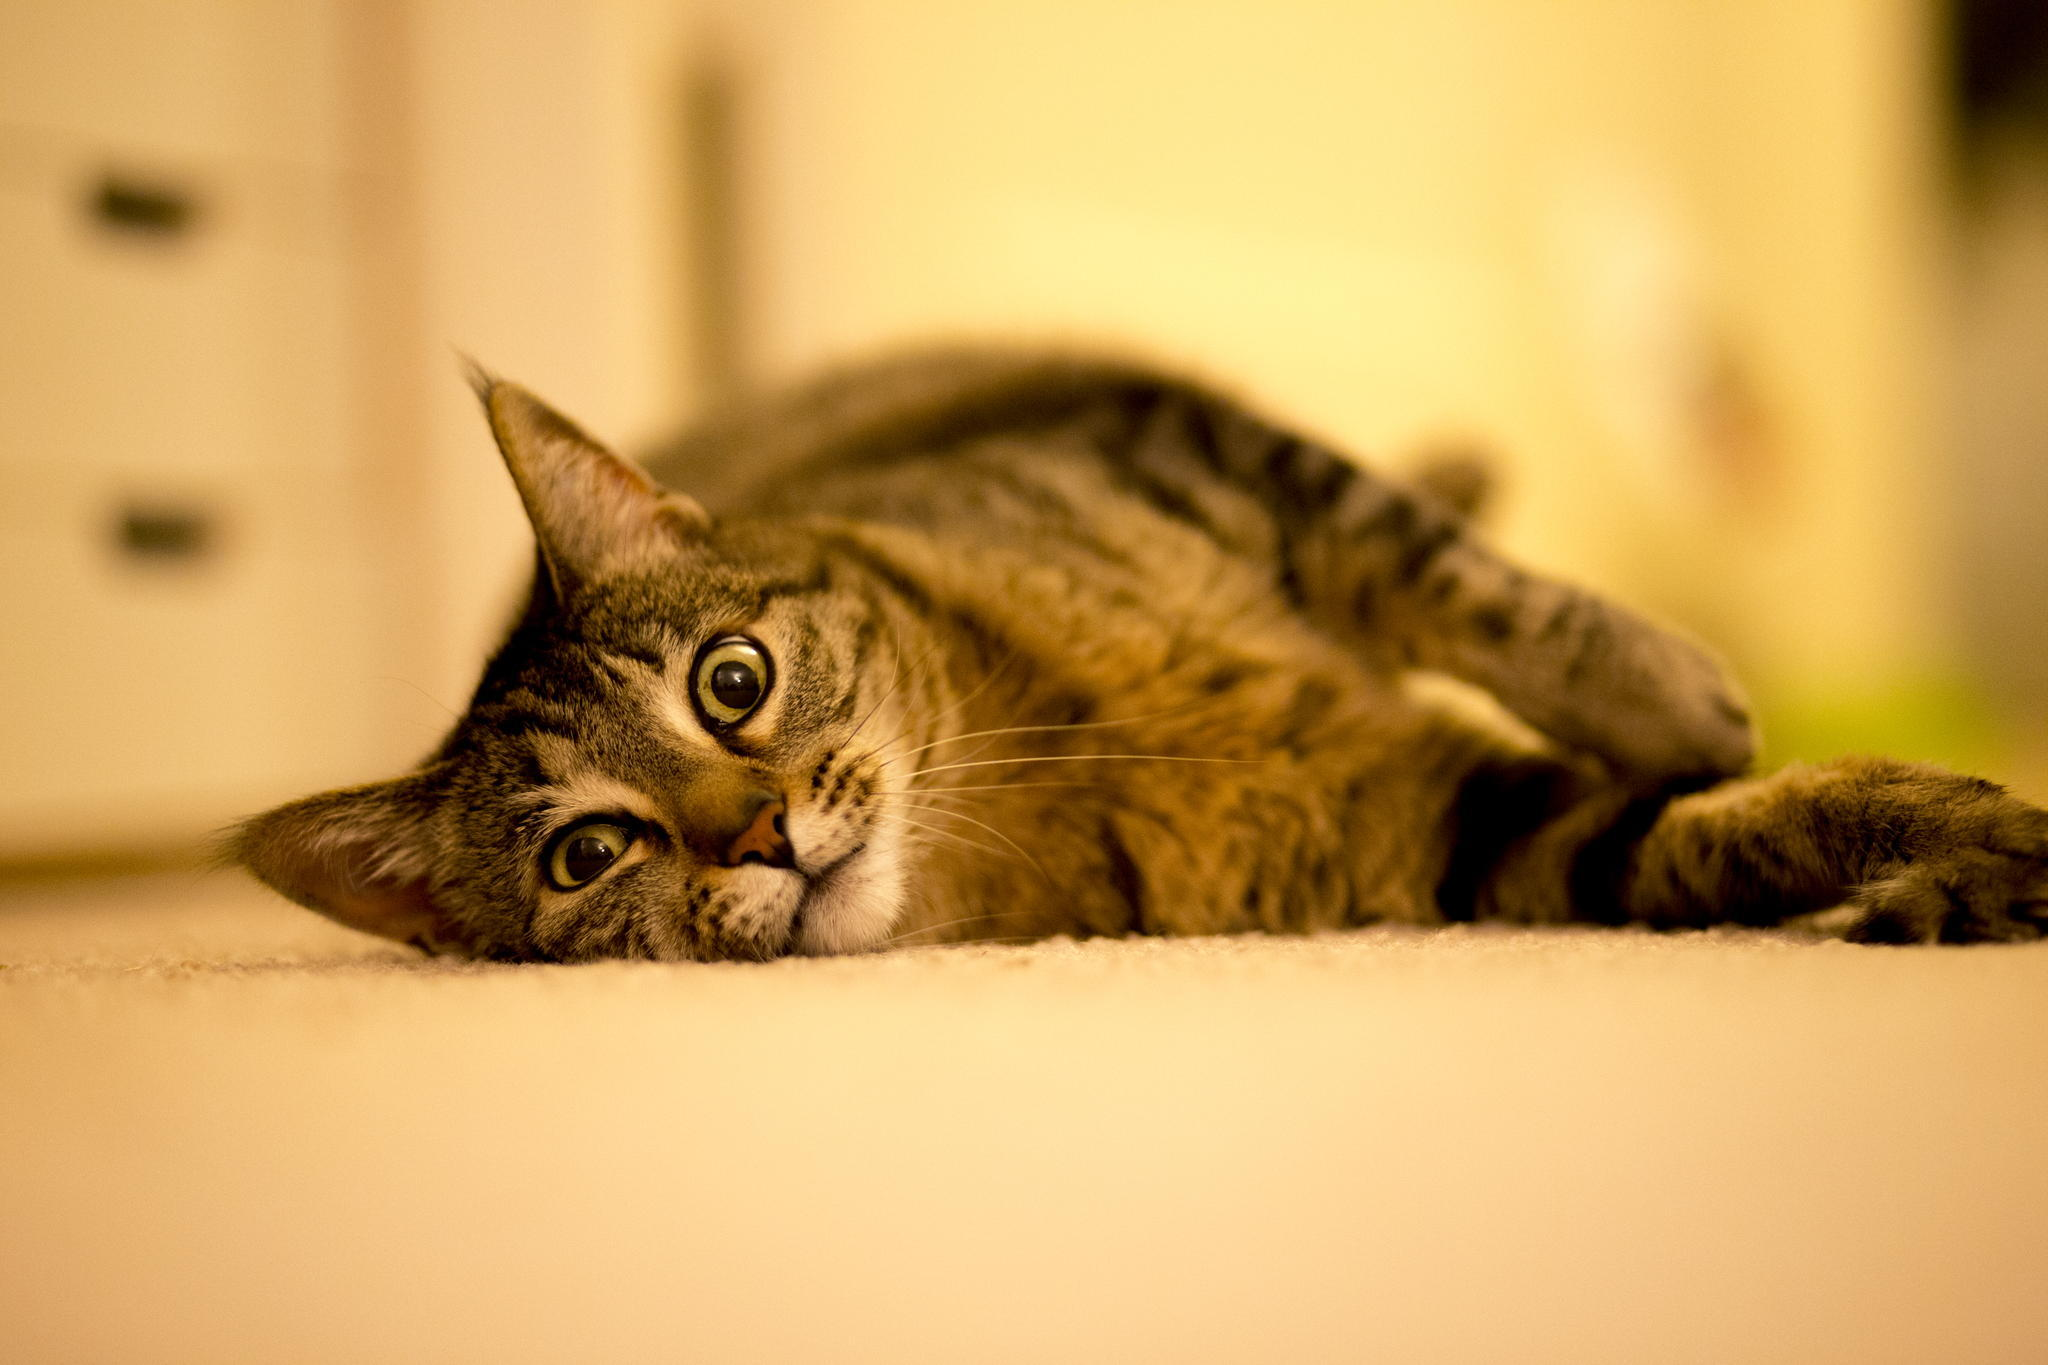 106461 download wallpaper Animals, Cat, Lies, Striped, Fat, Thick screensavers and pictures for free